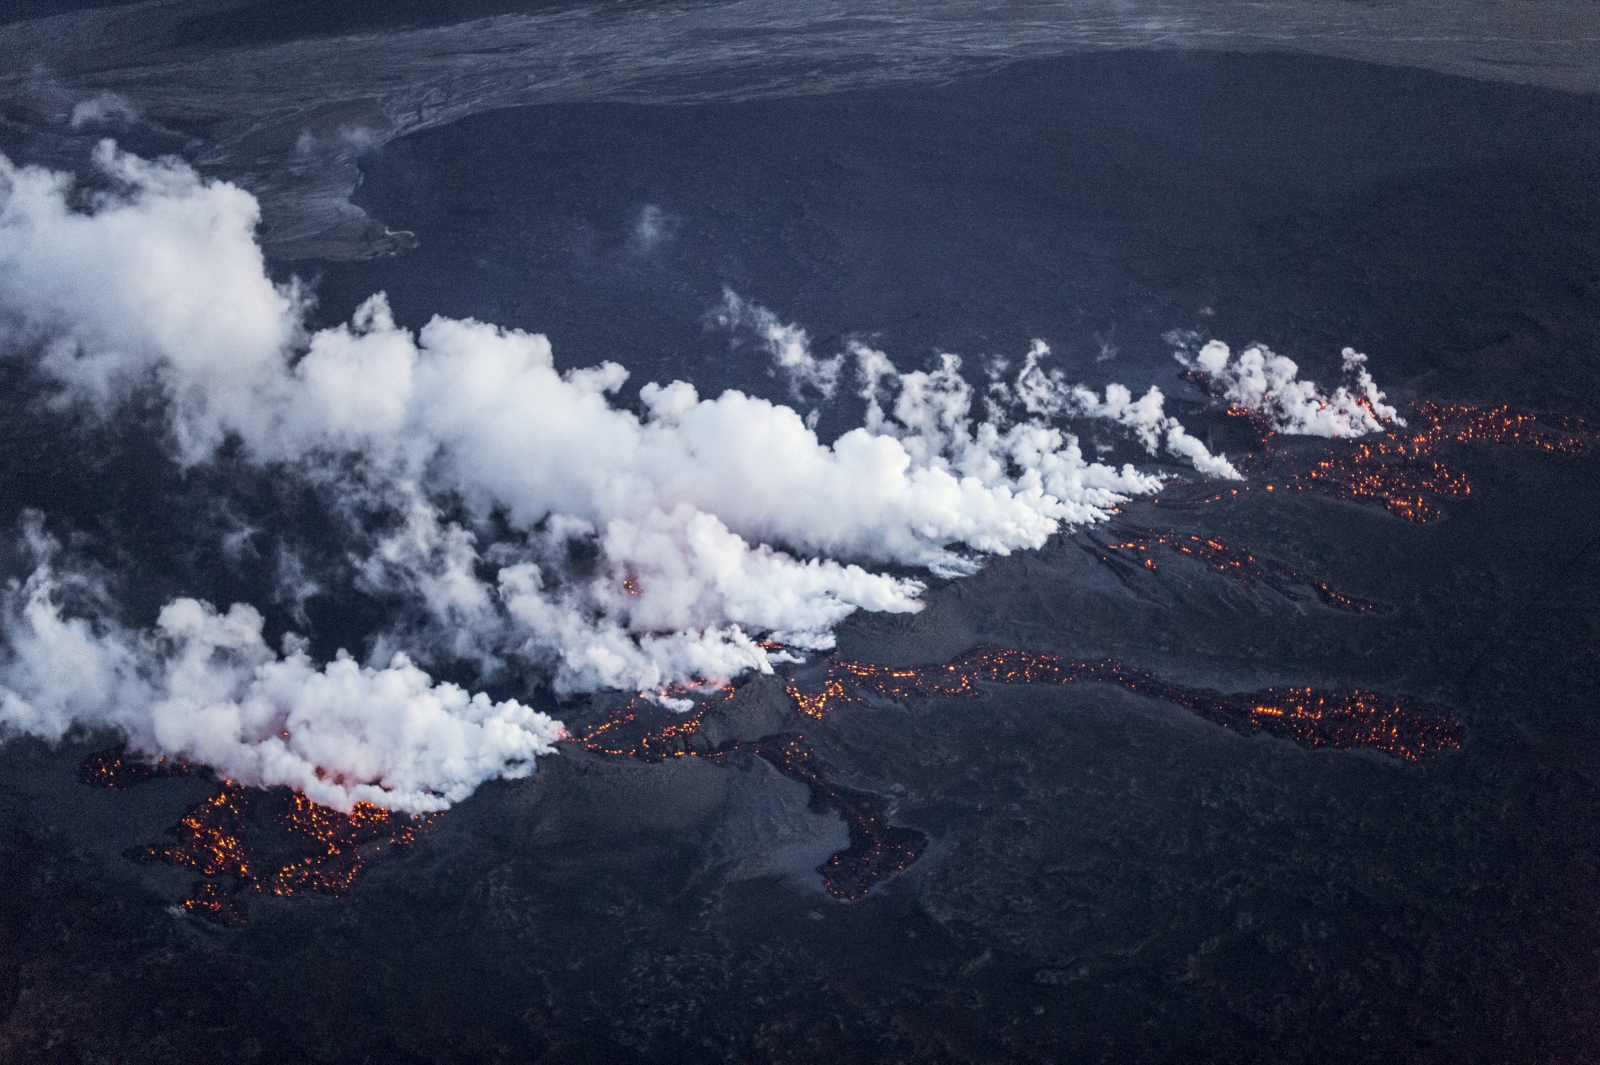 Magma along a fissure in a lava field north of the Vatnajokull glacier, which covers part of Bardarbunga volcano system